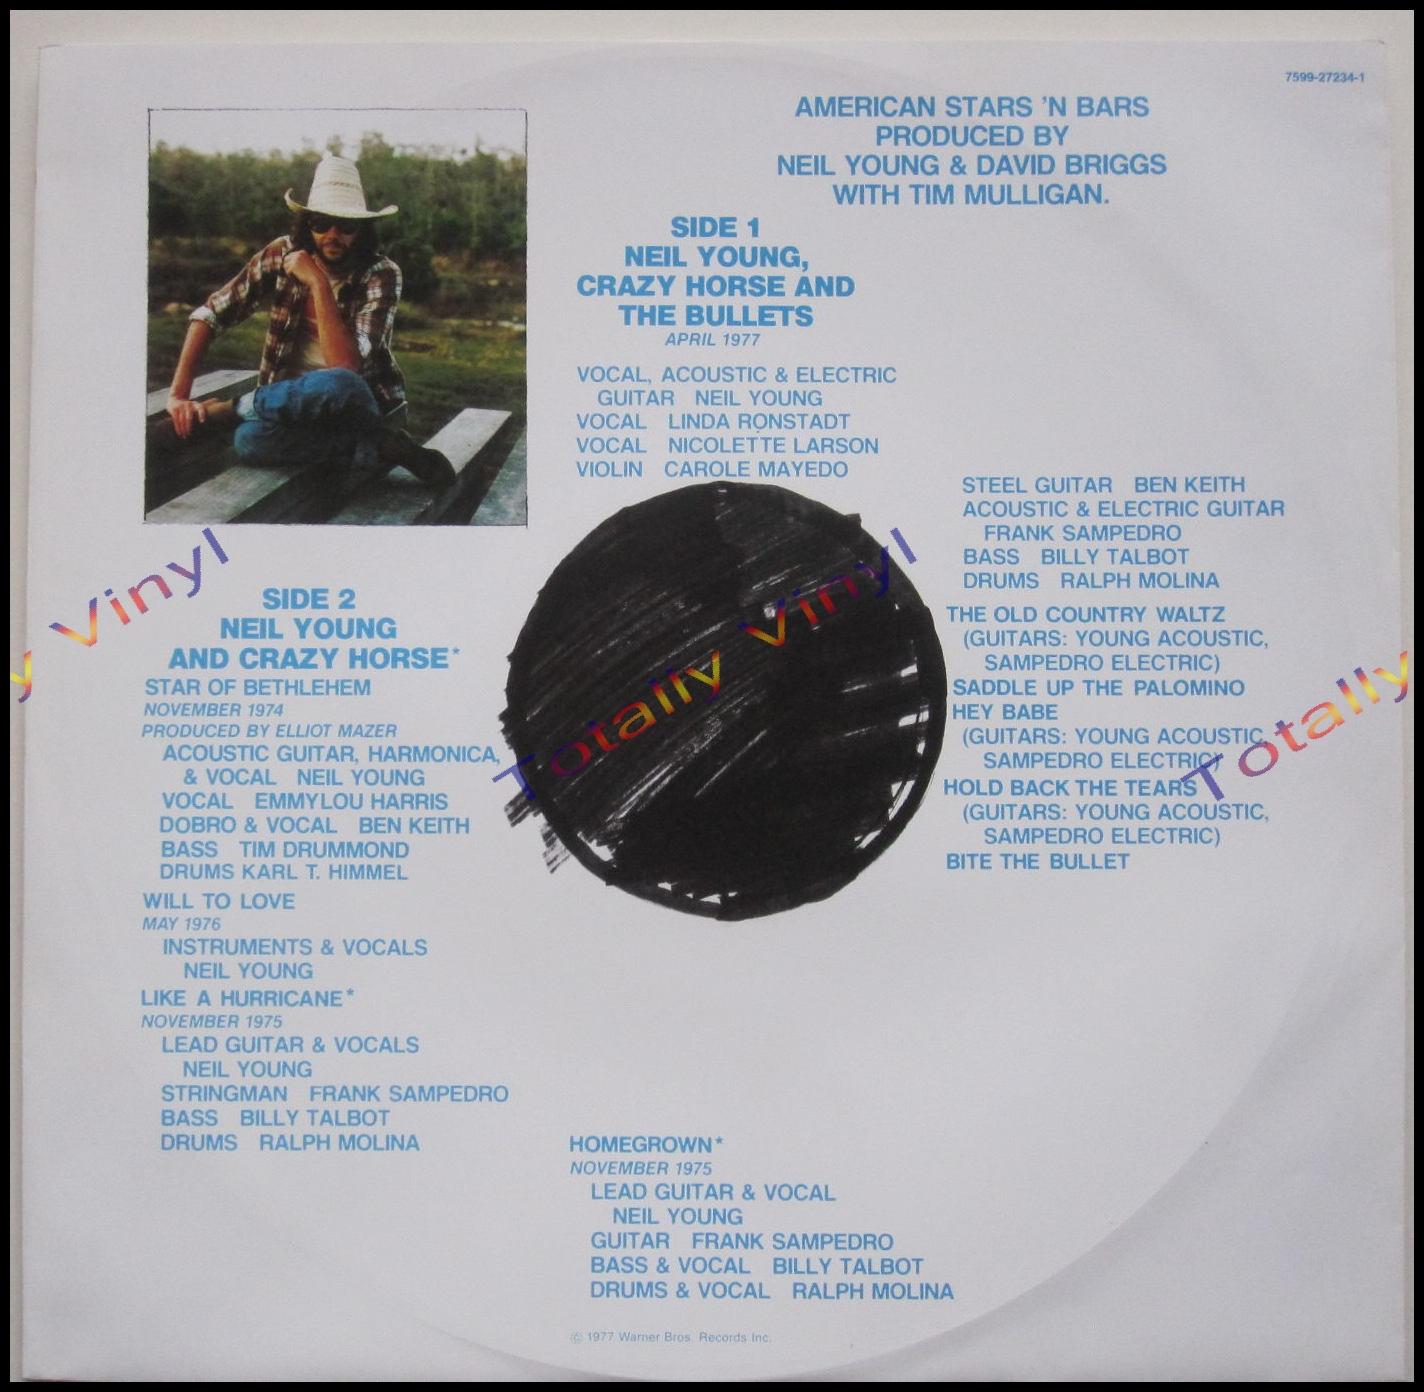 Totally Vinyl Records || Young (and Crazy Horse and the Bullets) , Neil - American stars n bars LP